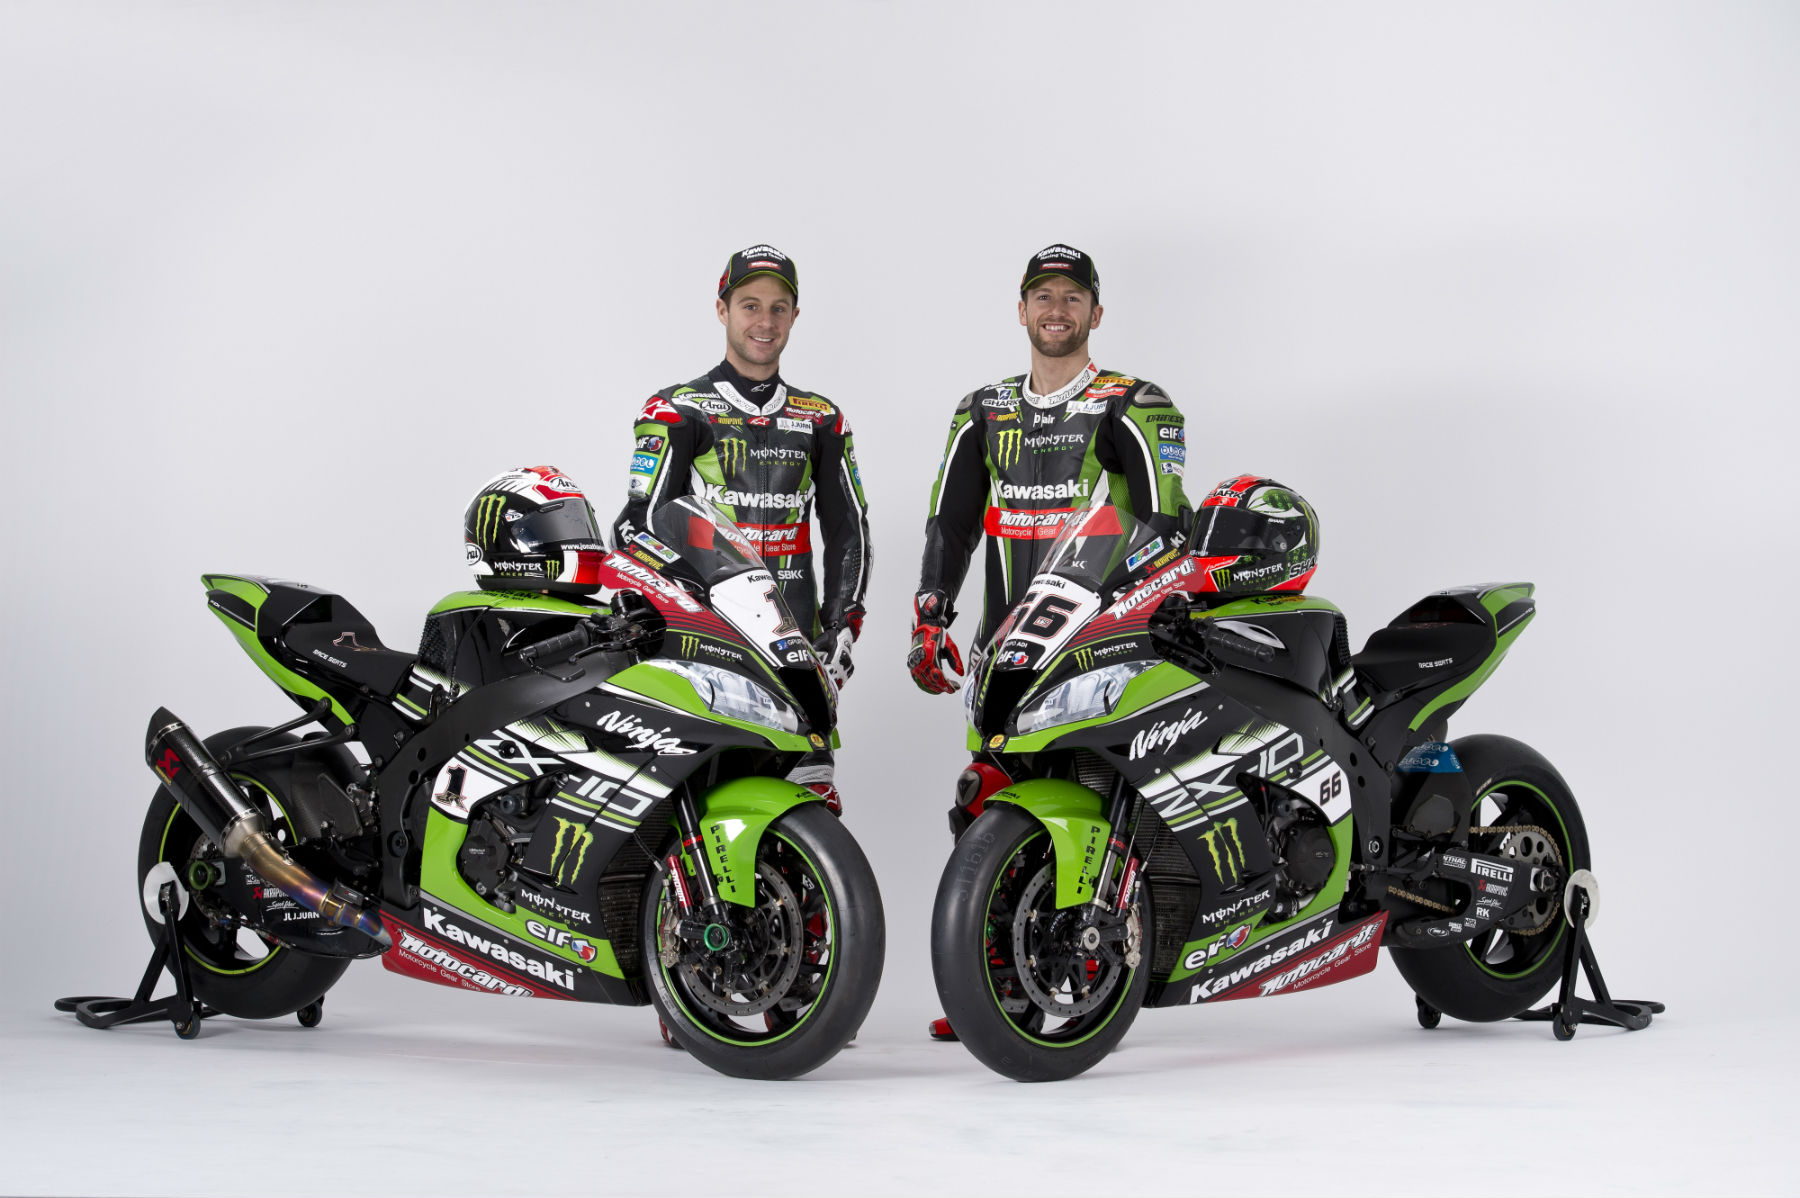 Kawasaki-Racing-Team-2016.jpg